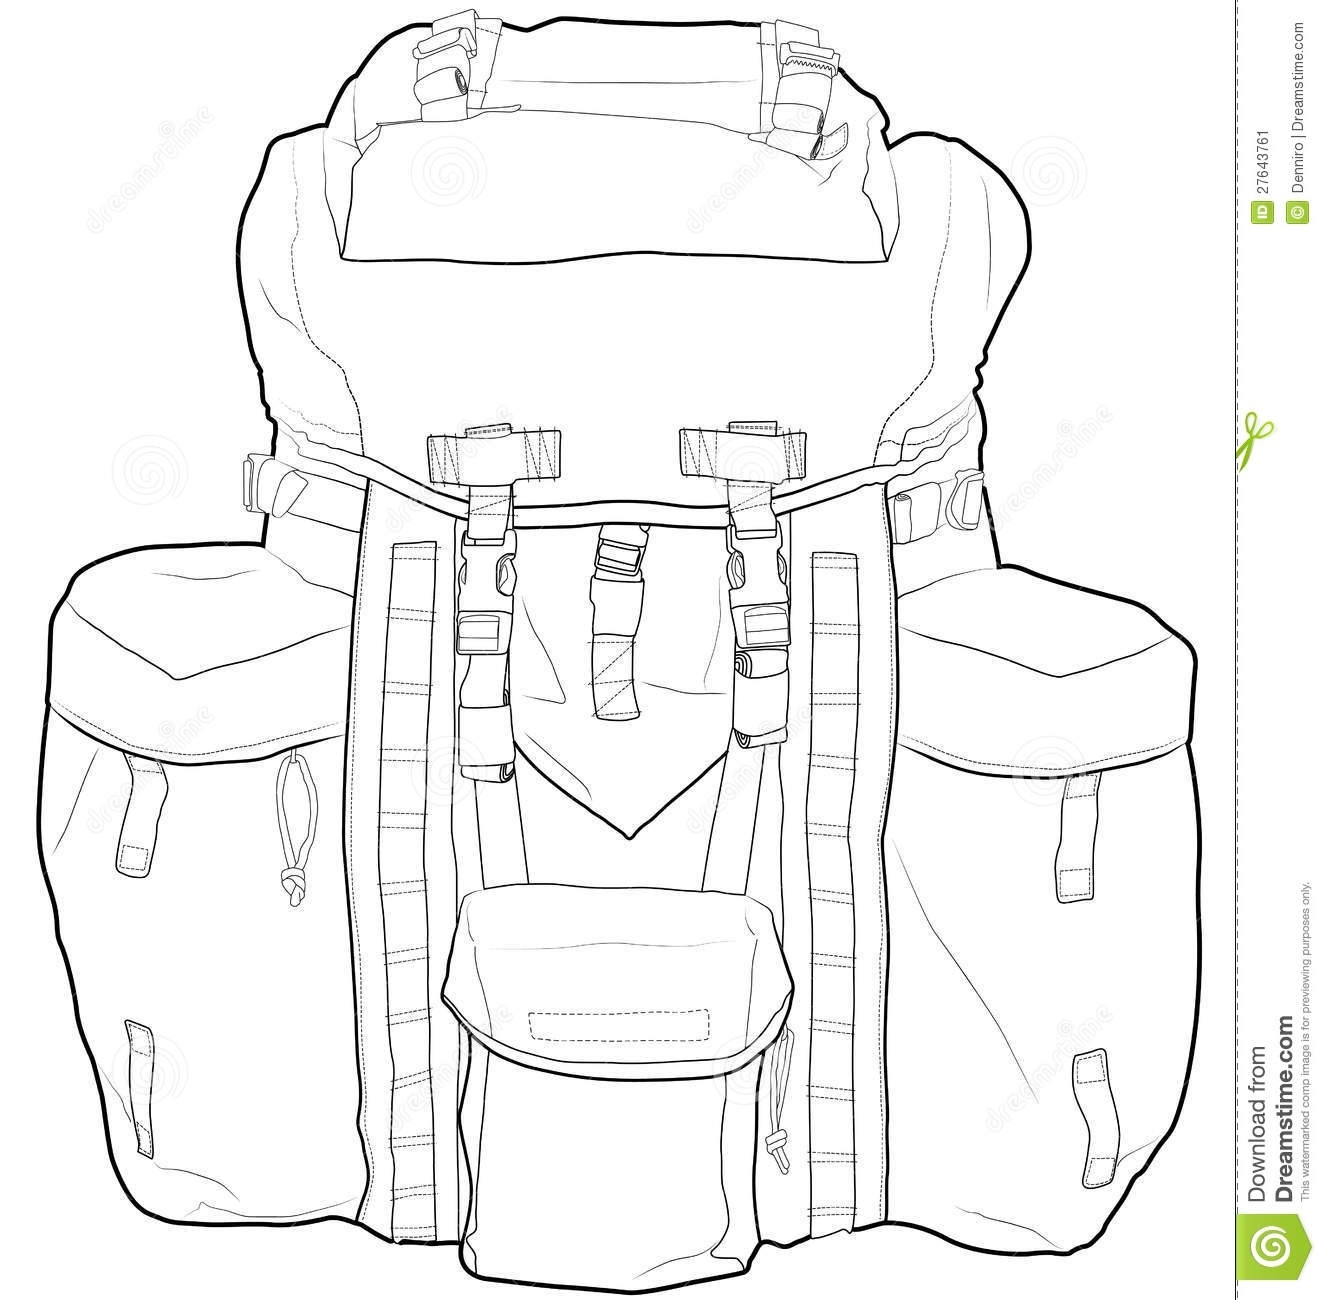 Backpack clipart outline. Hiking black and white